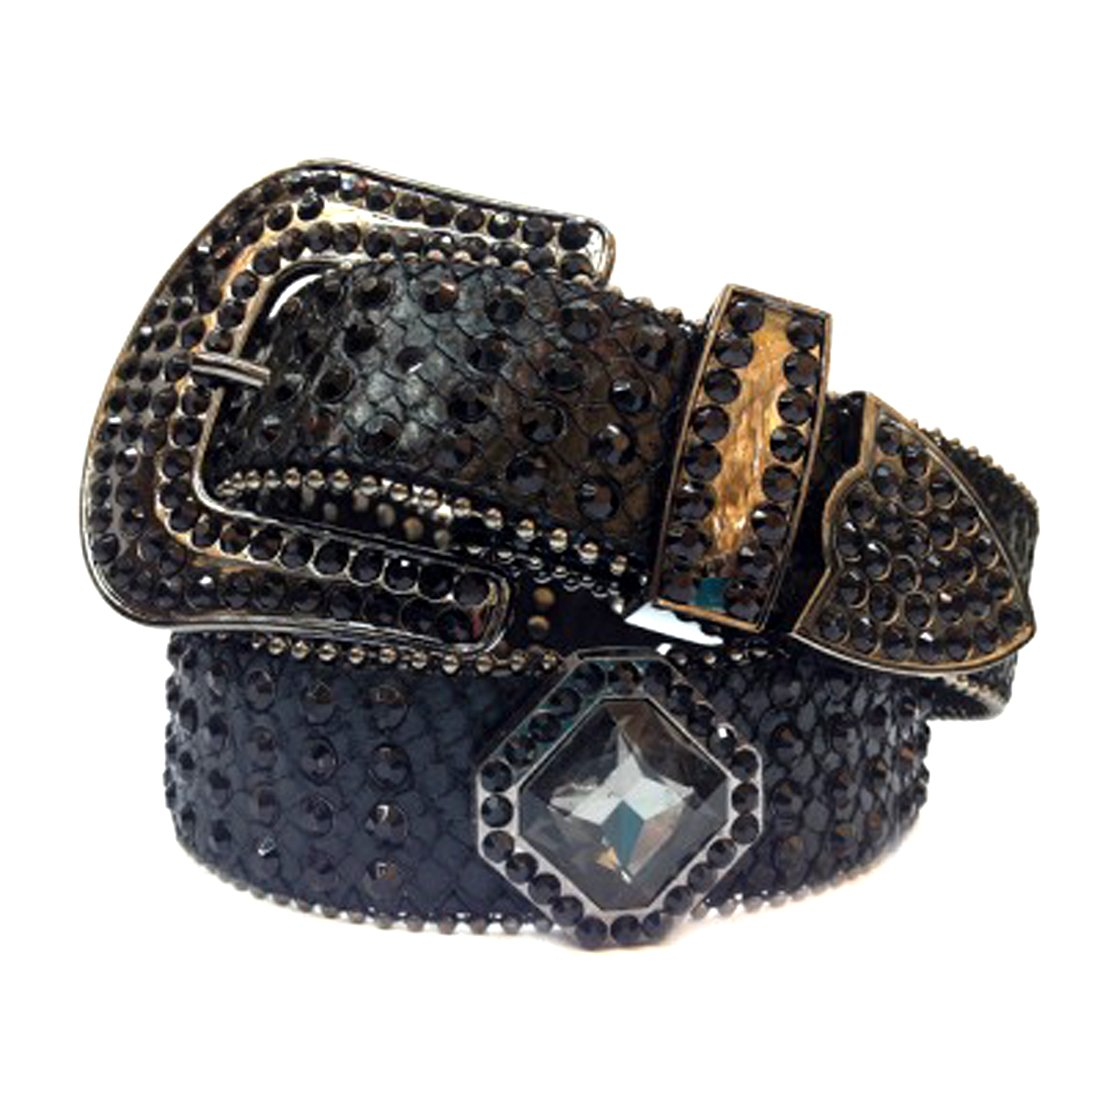 Black Leather Belt in a Crocodile Pattern Decorated in Black Crystals, Size M/L by Crazy4Bling (Image #1)